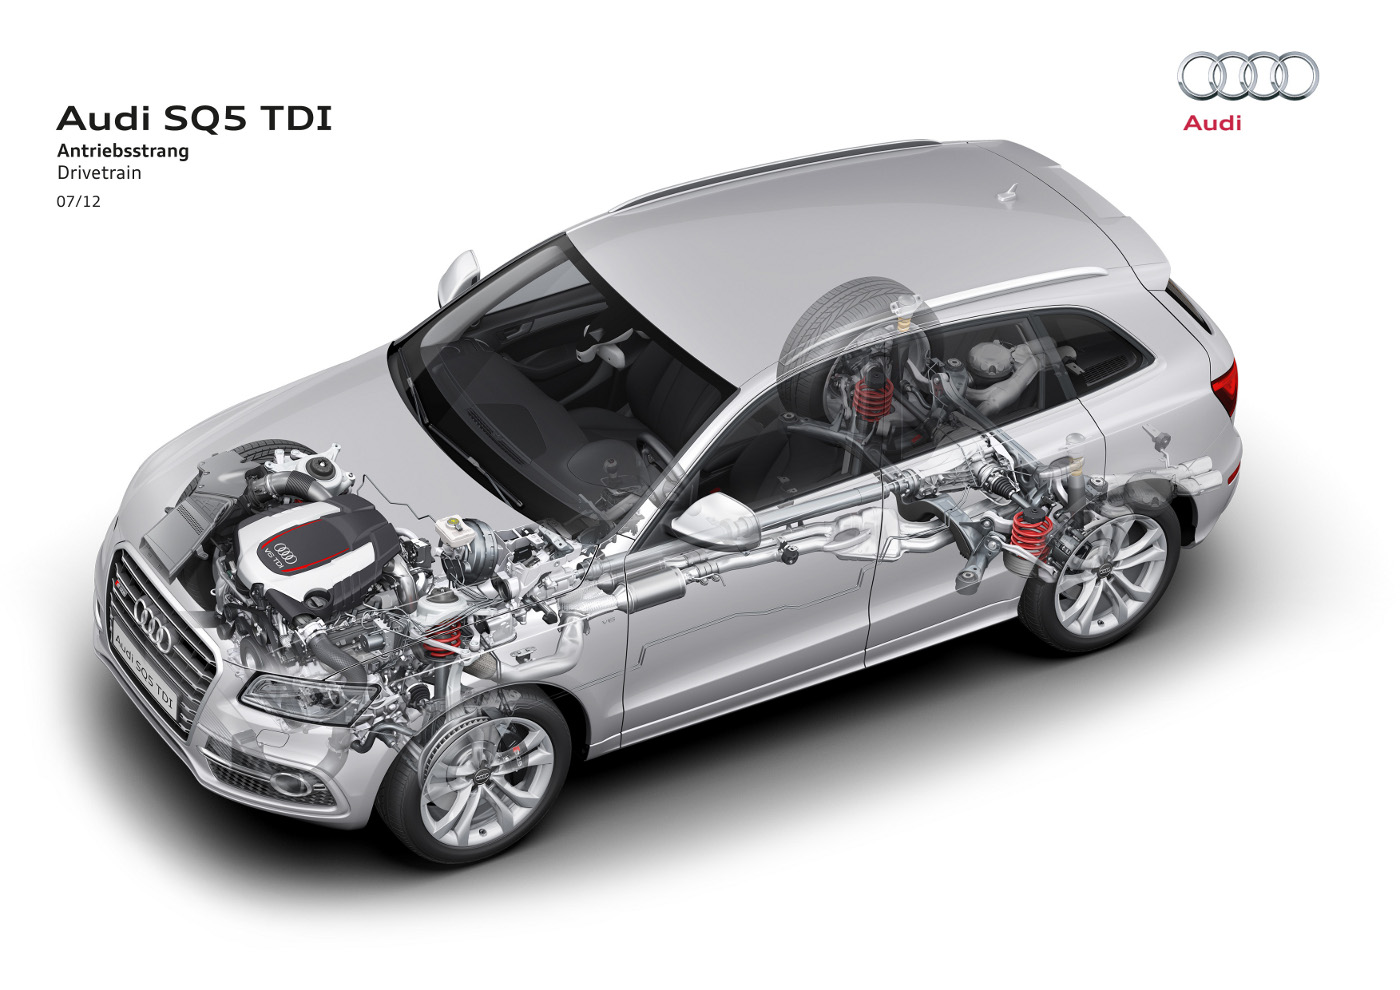 1-audi-sq5-implantation-des-organes-technique.jpg